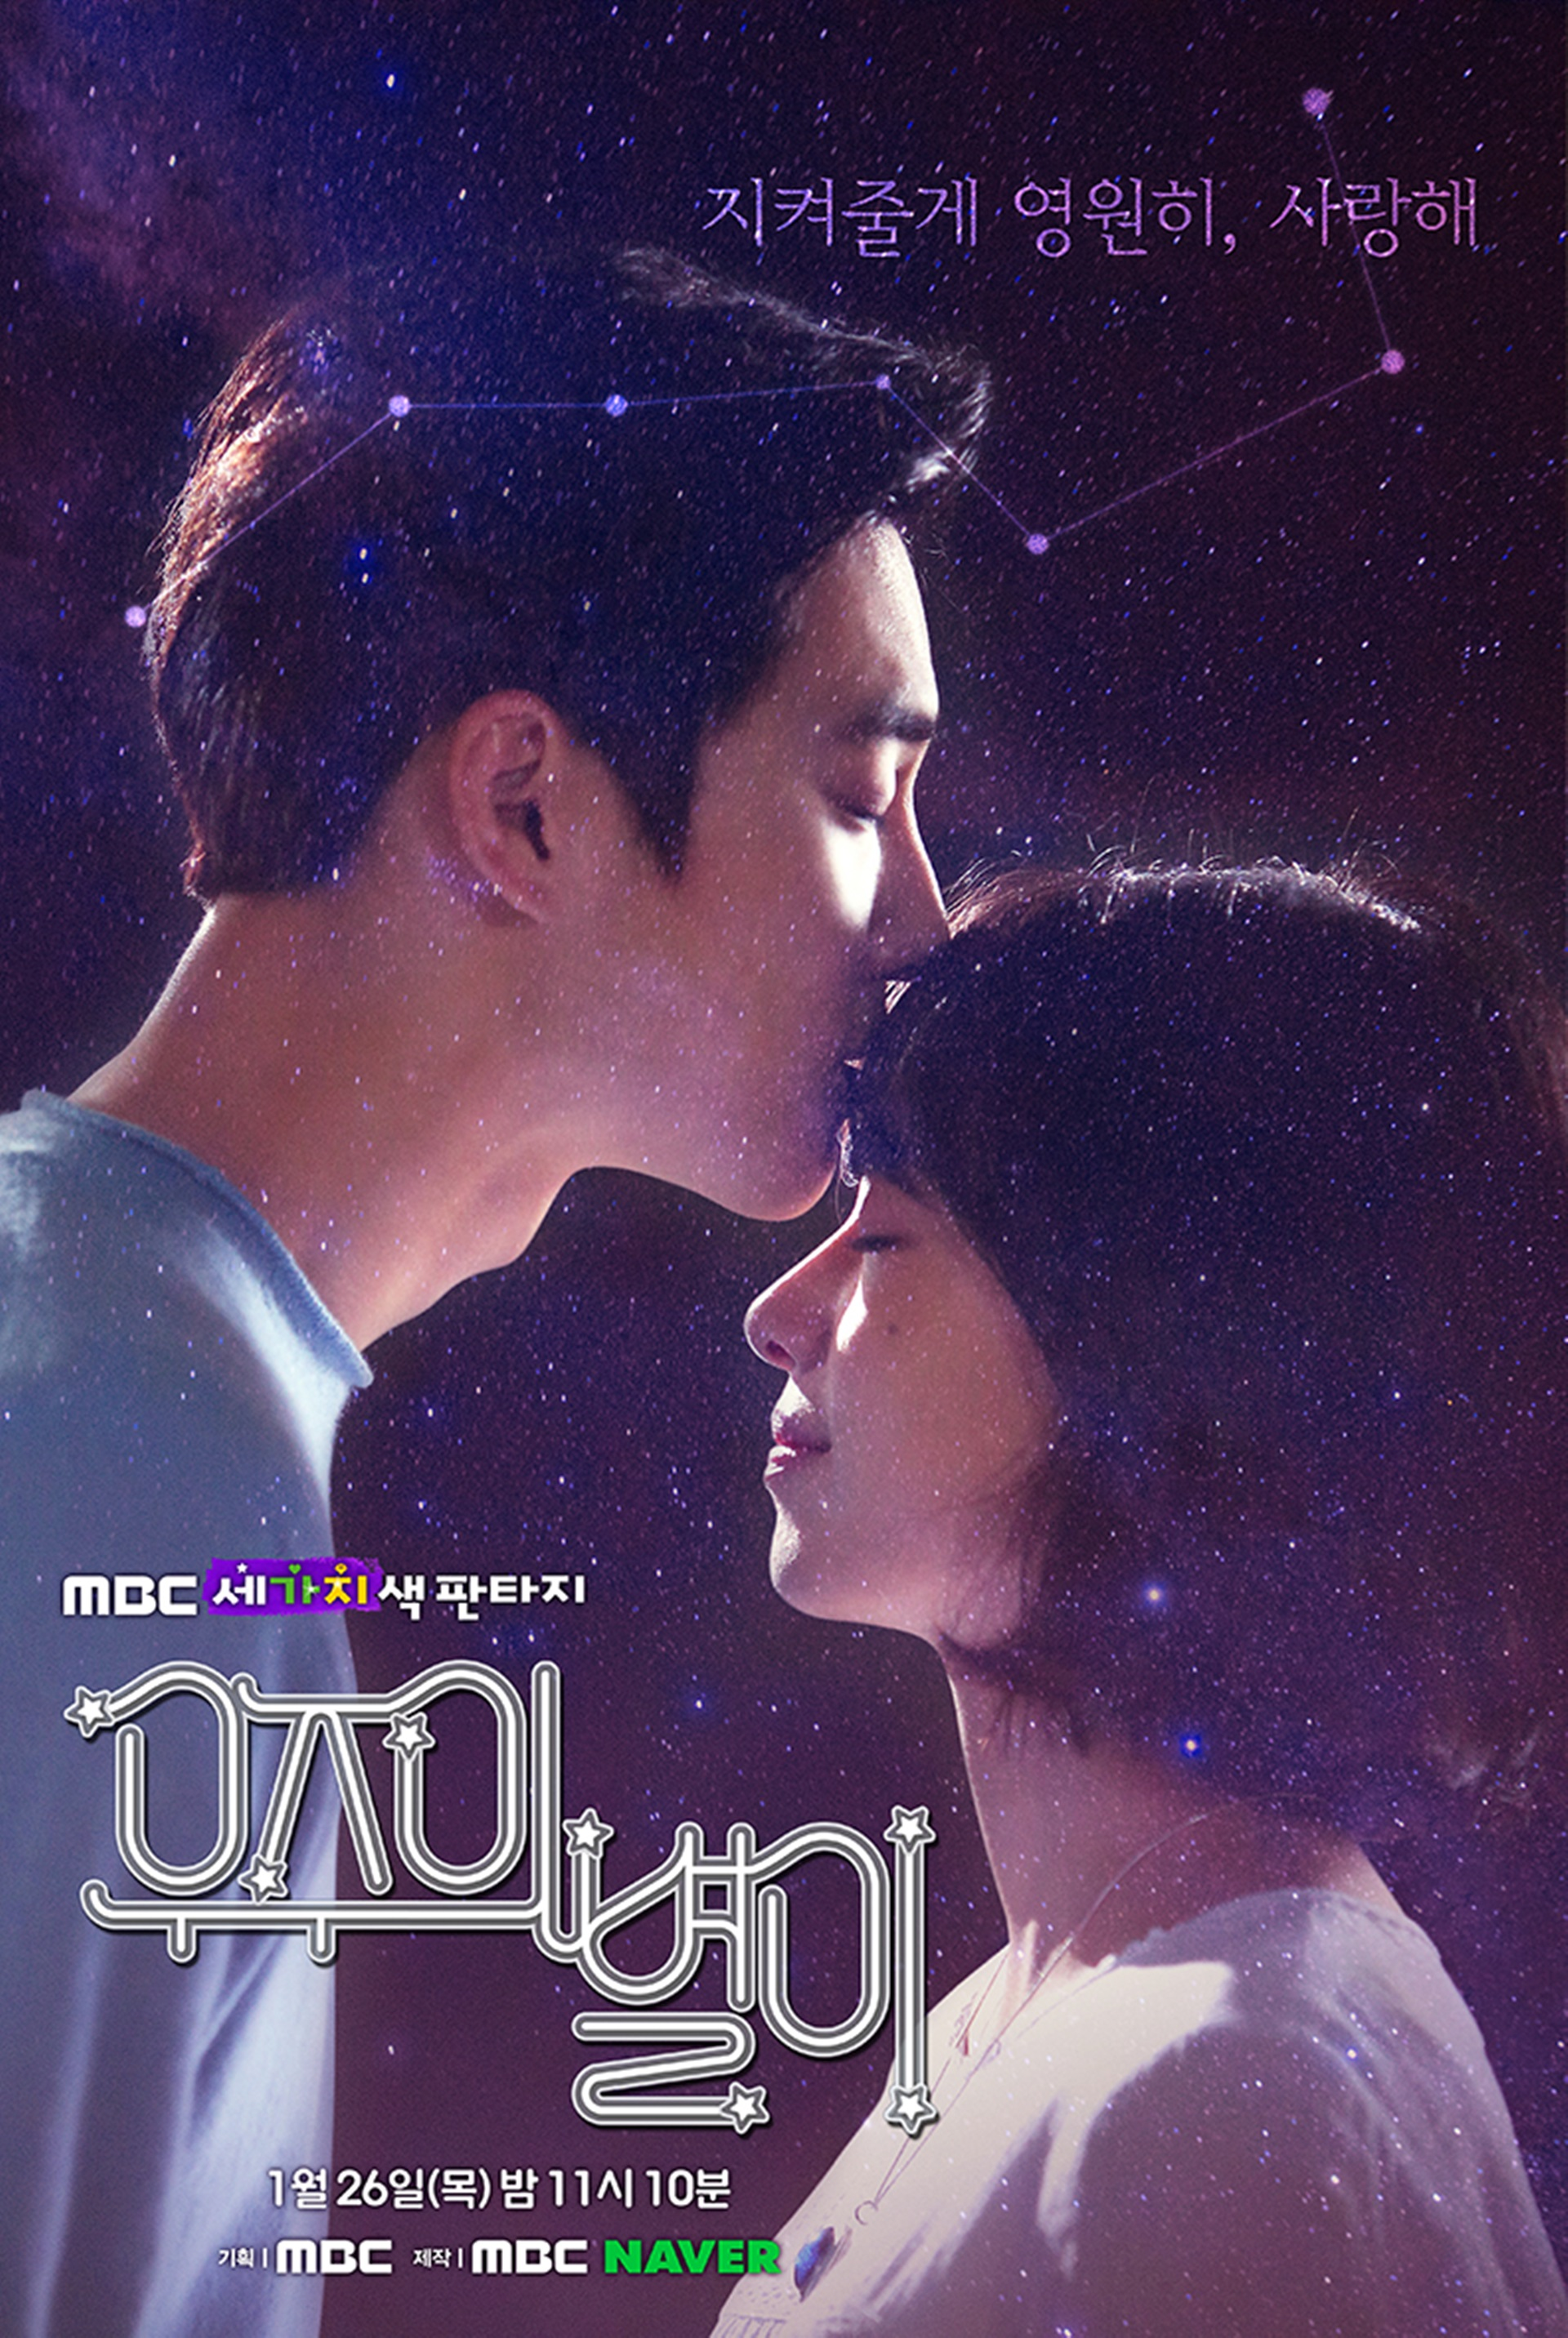 Kdrama The Universe Star Poster